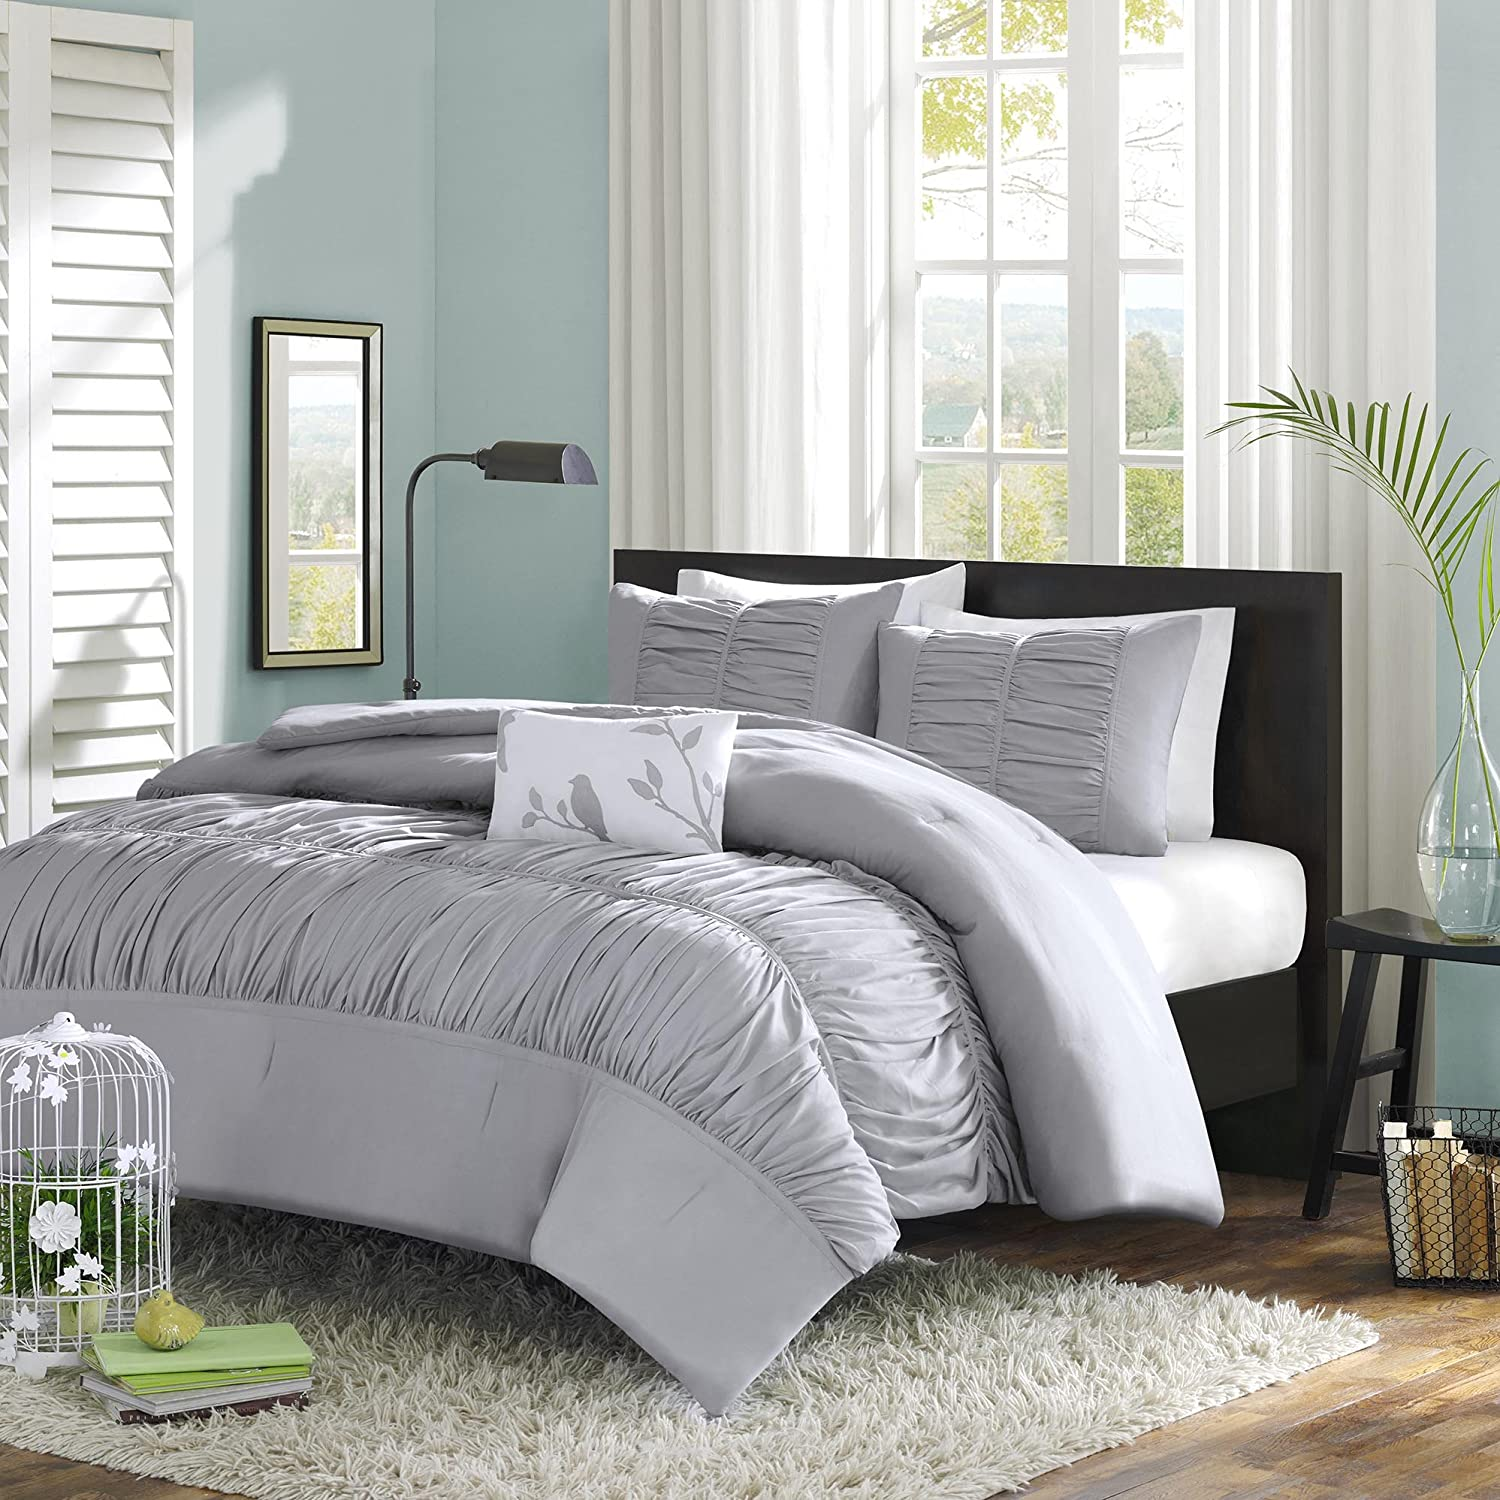 Mizone Mirimar 4 Piece Comforter Set, Full/Queen, Grey